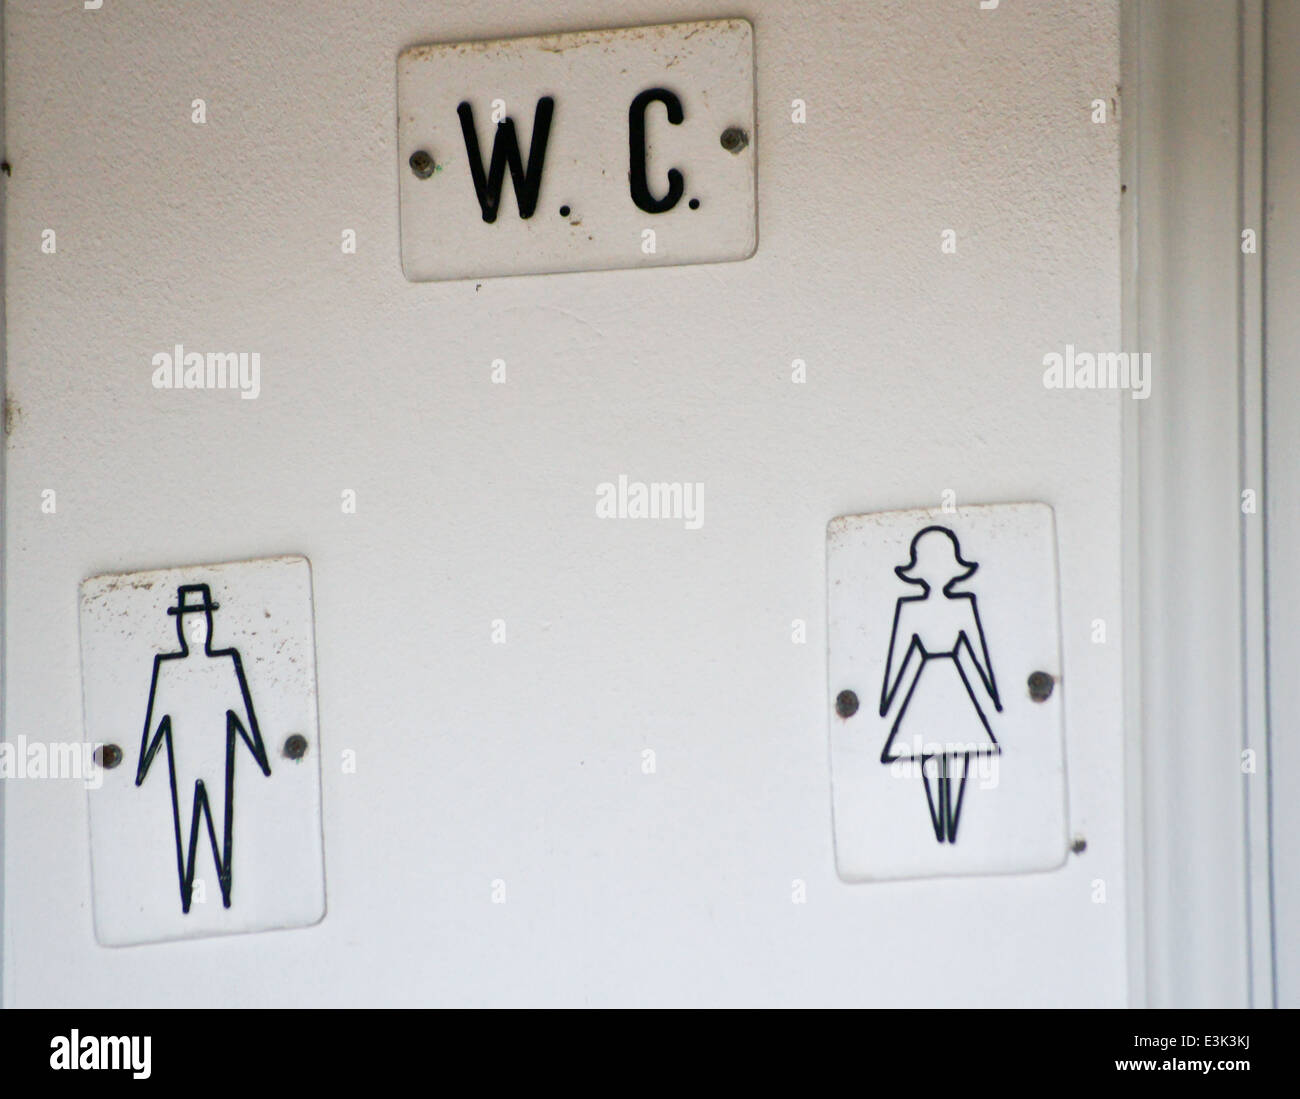 toilet-sign-with-diagrams-of-man-and-woman-kos-town-kos-greece-E3K3KJ.jpg